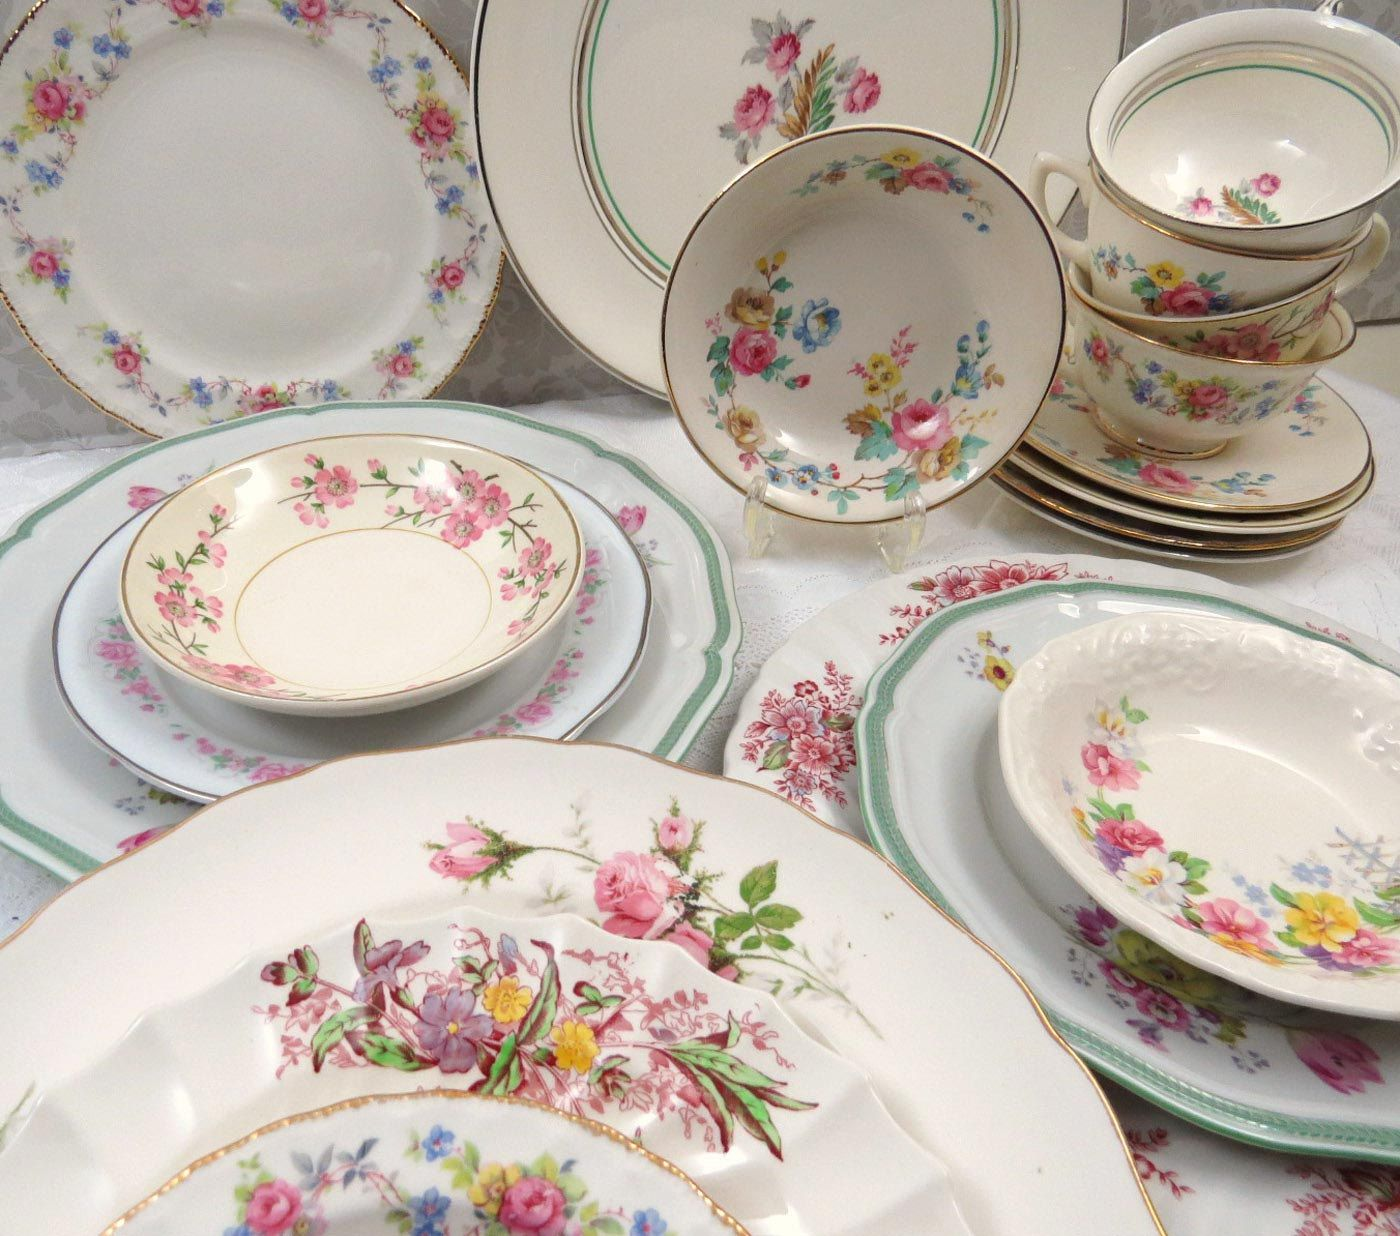 20 pc mismatched dinnerware set service for 4 in vintage fine china dinner - China Dinner Plates